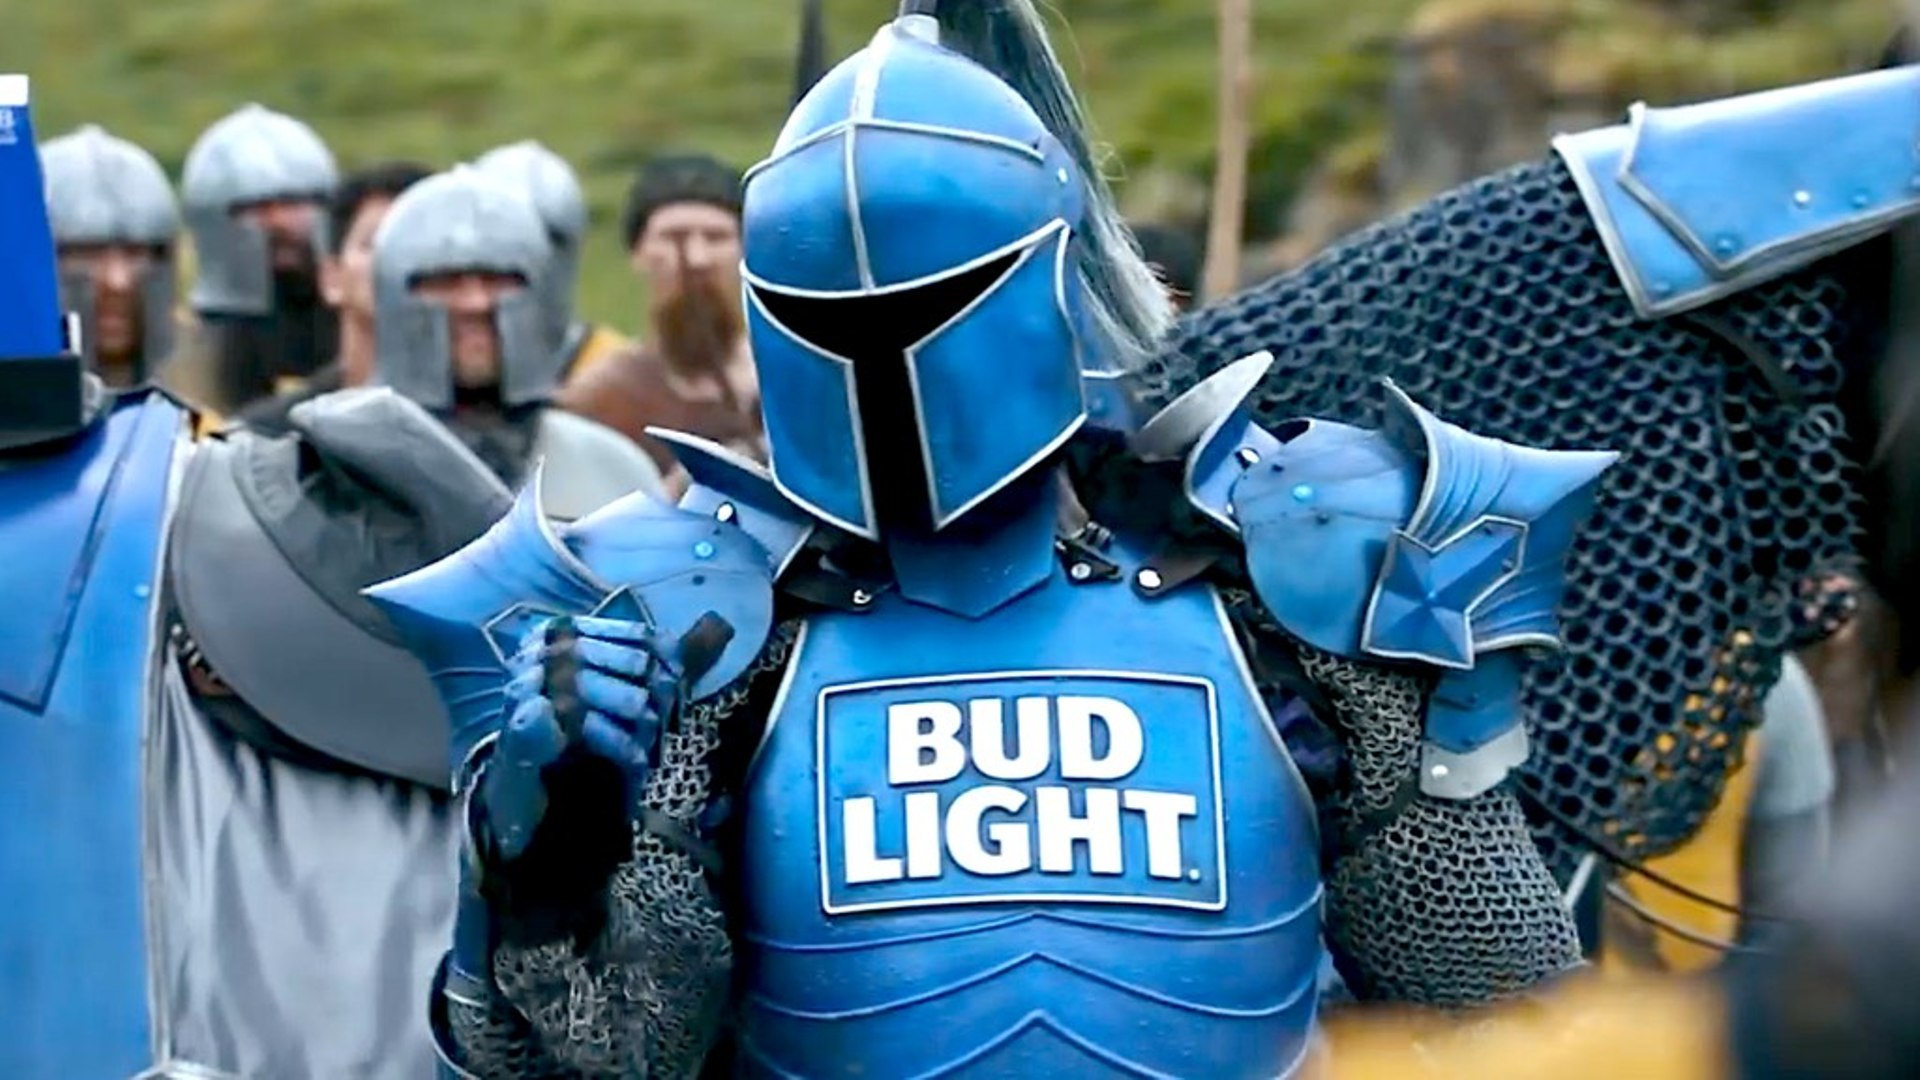 How bud light is made penguinz0